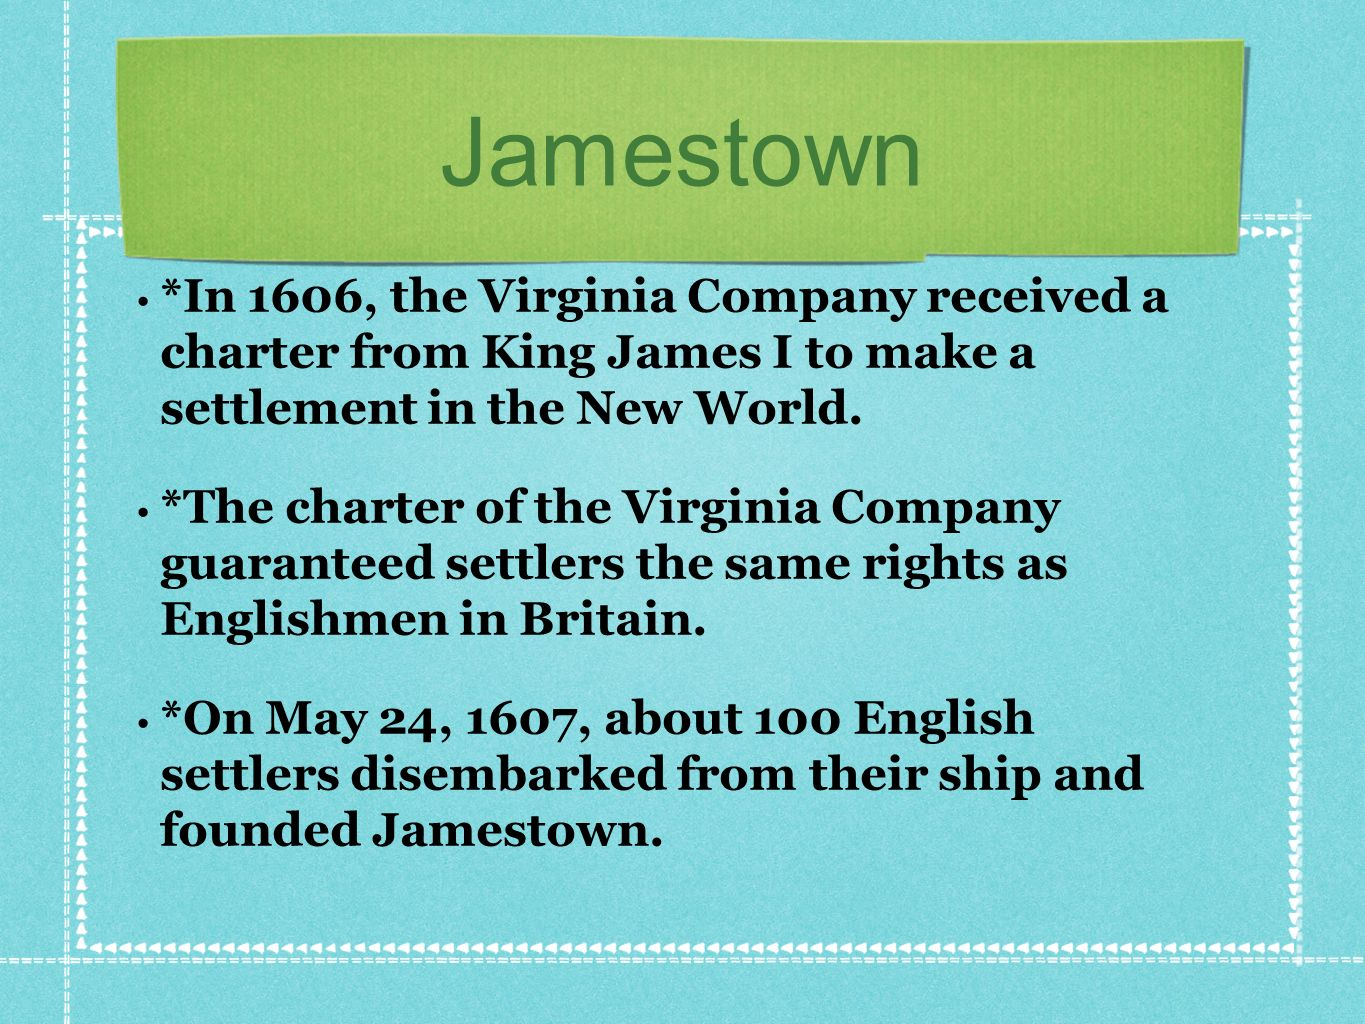 Jamestown *In 1606, the Virginia Company received a charter from King James I to make a settlement in the New World.